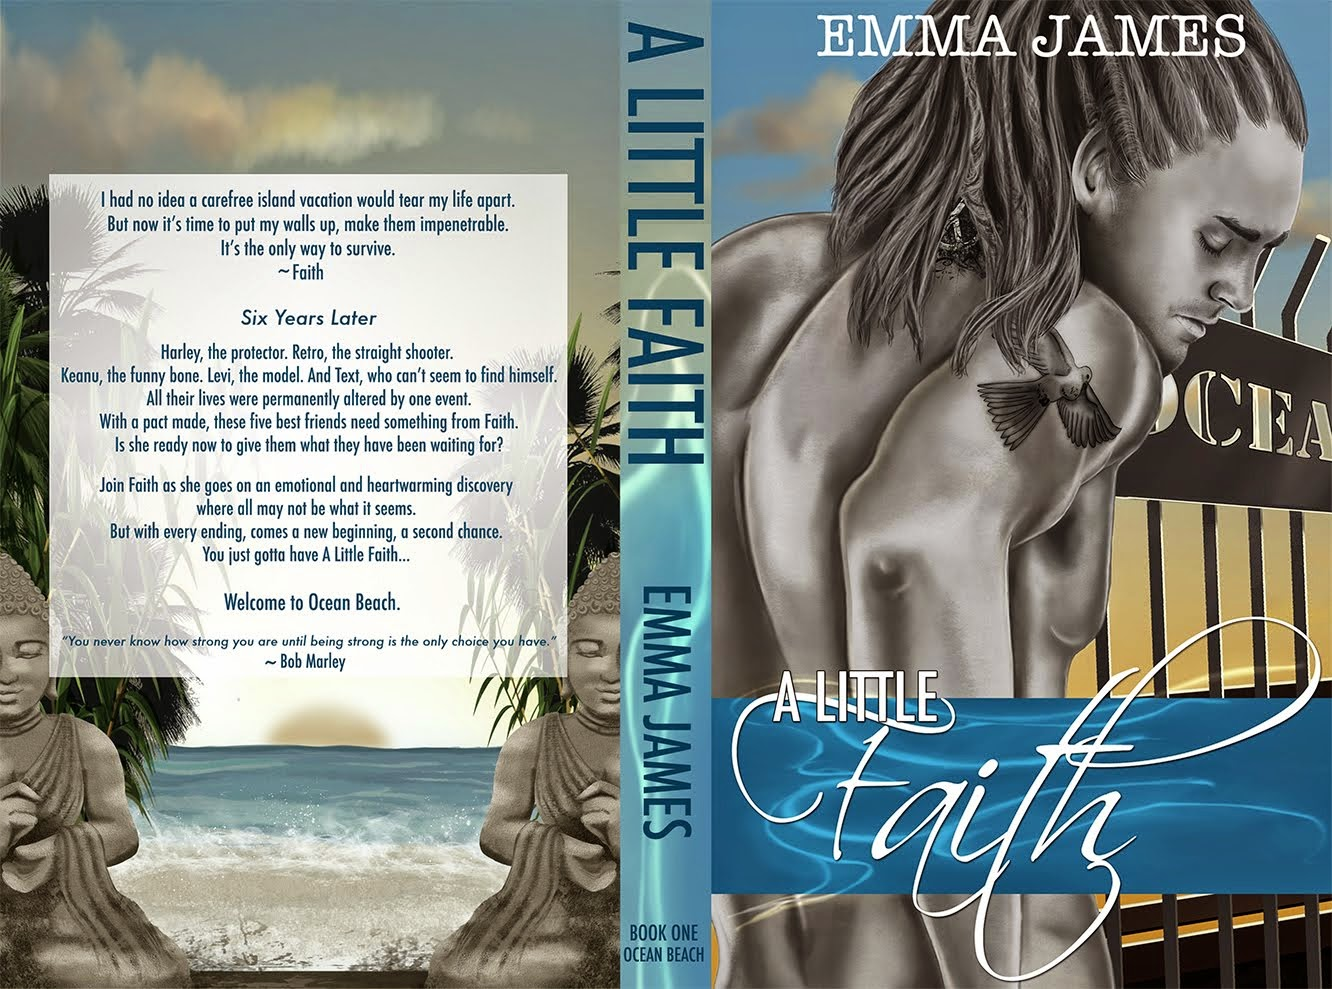 5 DIGITAL COPIES OF A LITTLE FAITH